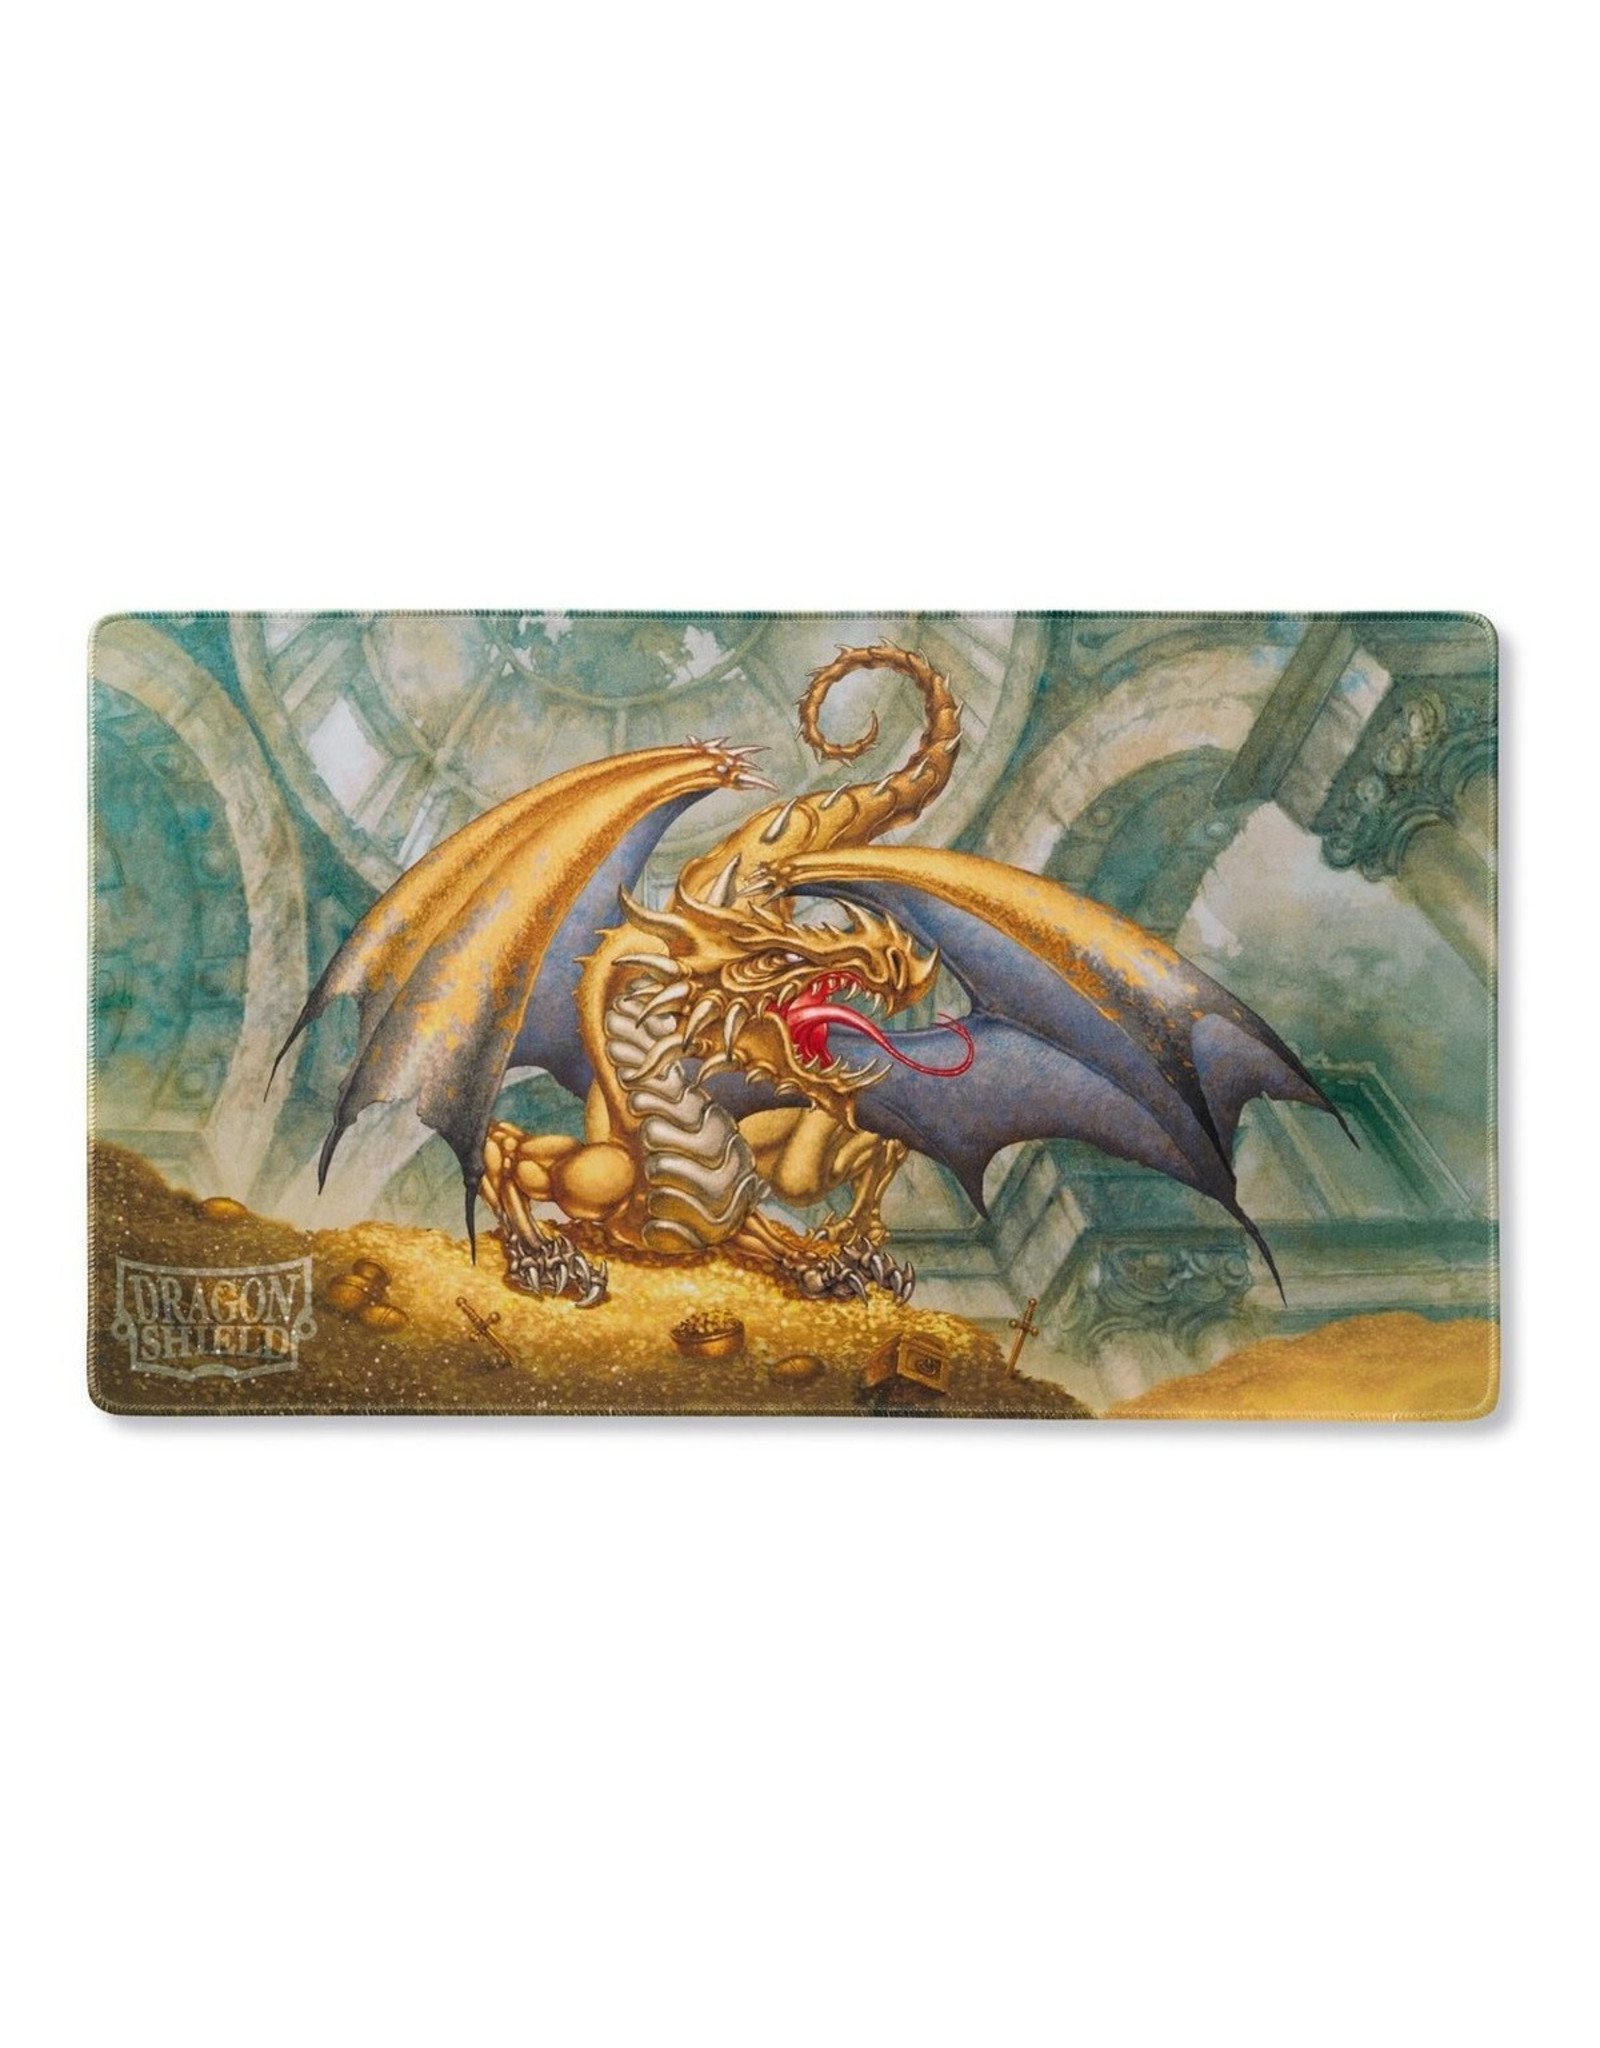 Arcane Tinmen King 'Gygex' the Golden Terror Limited Edition Playmat